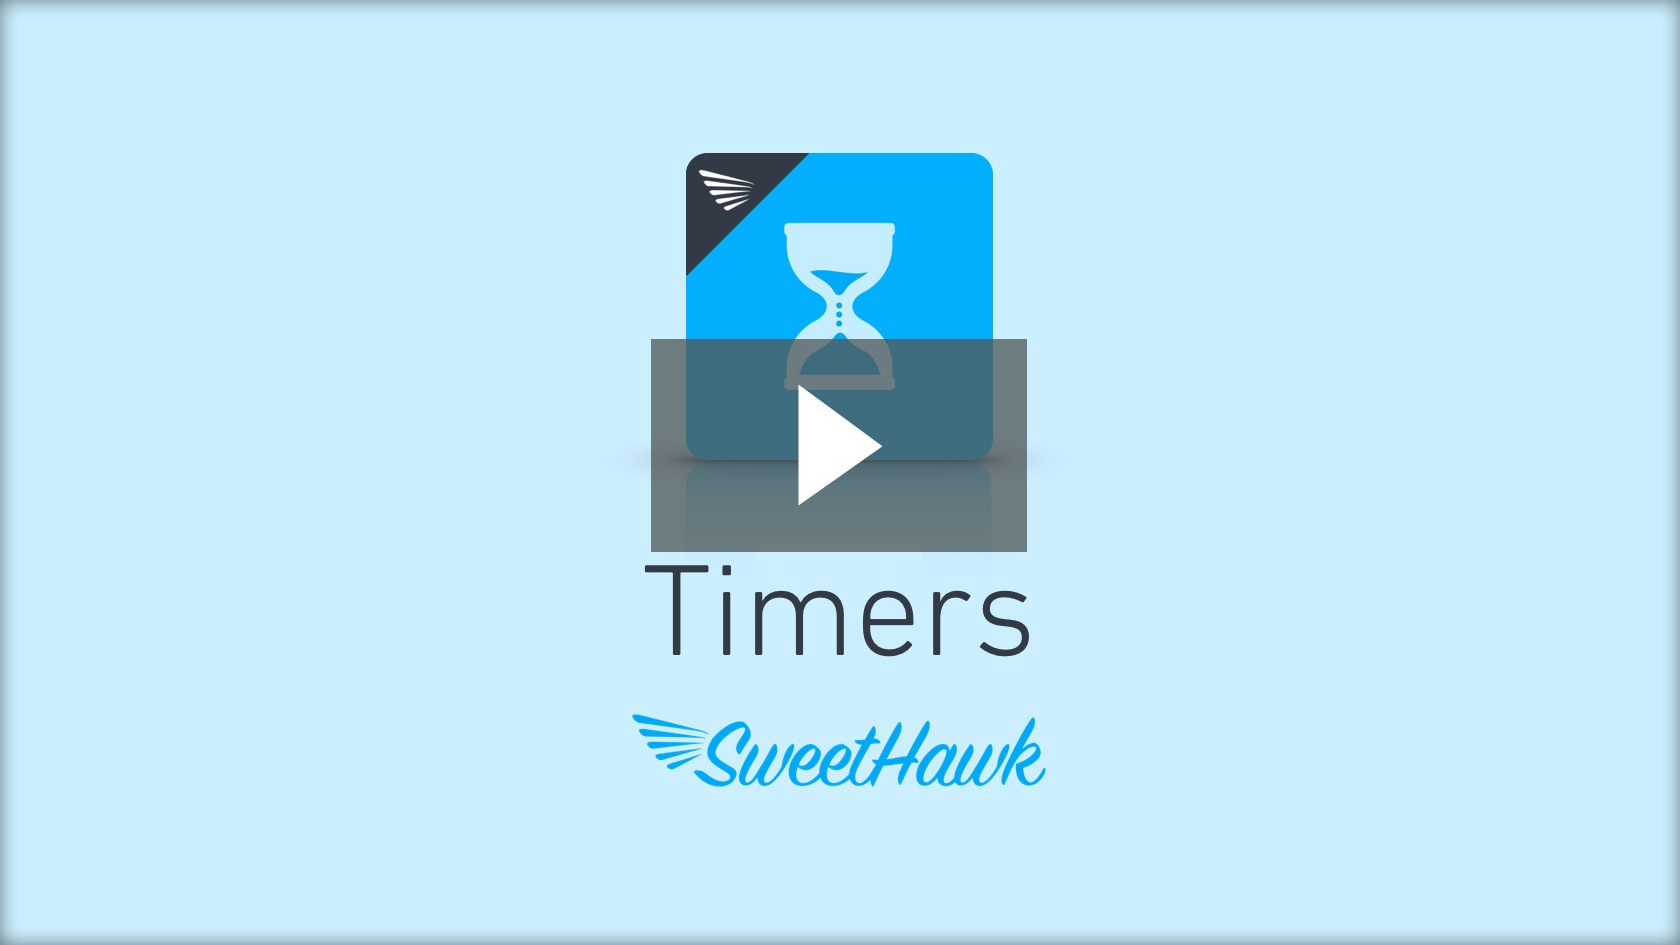 Watch the Timers app video